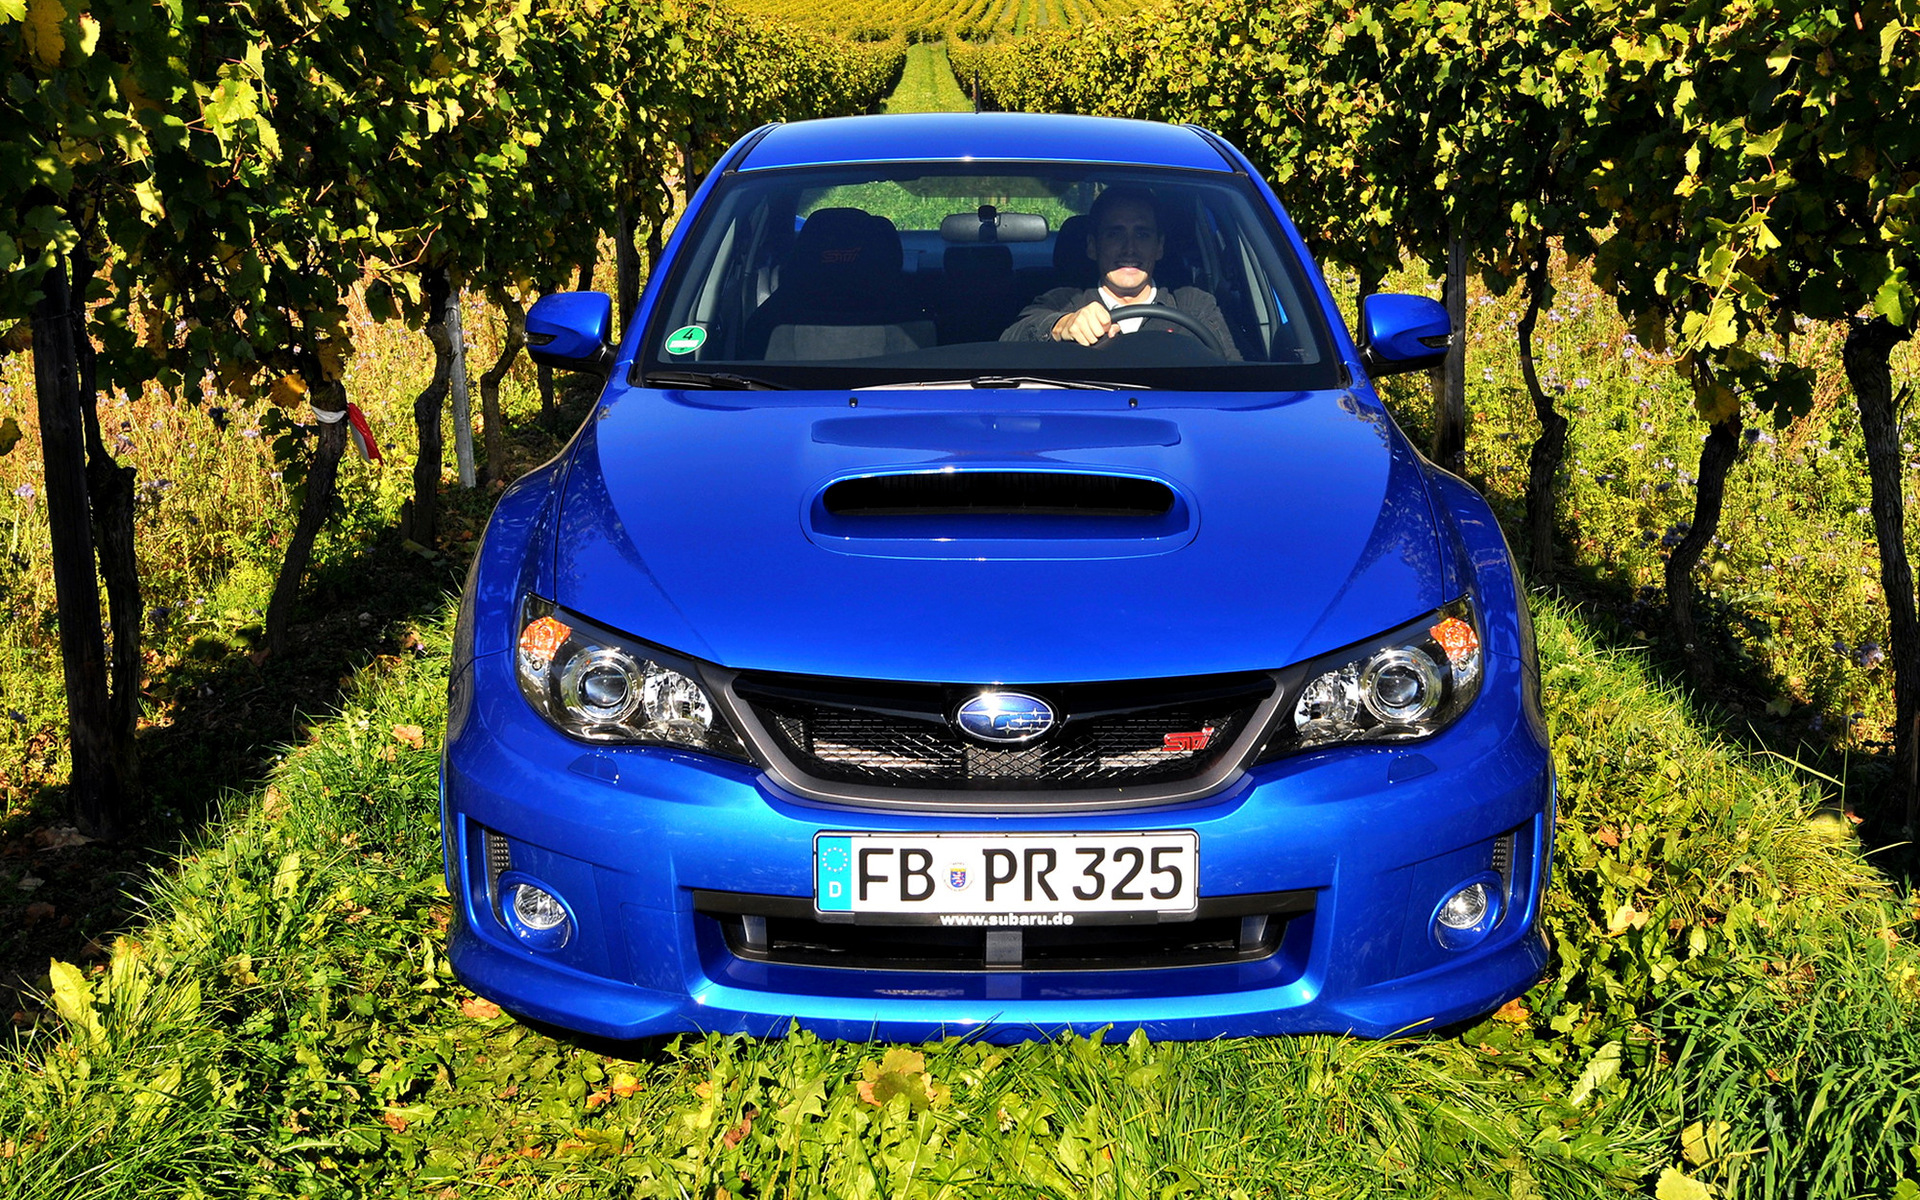 Subaru Impreza Wrx Sti Sedan Car Wallpaper